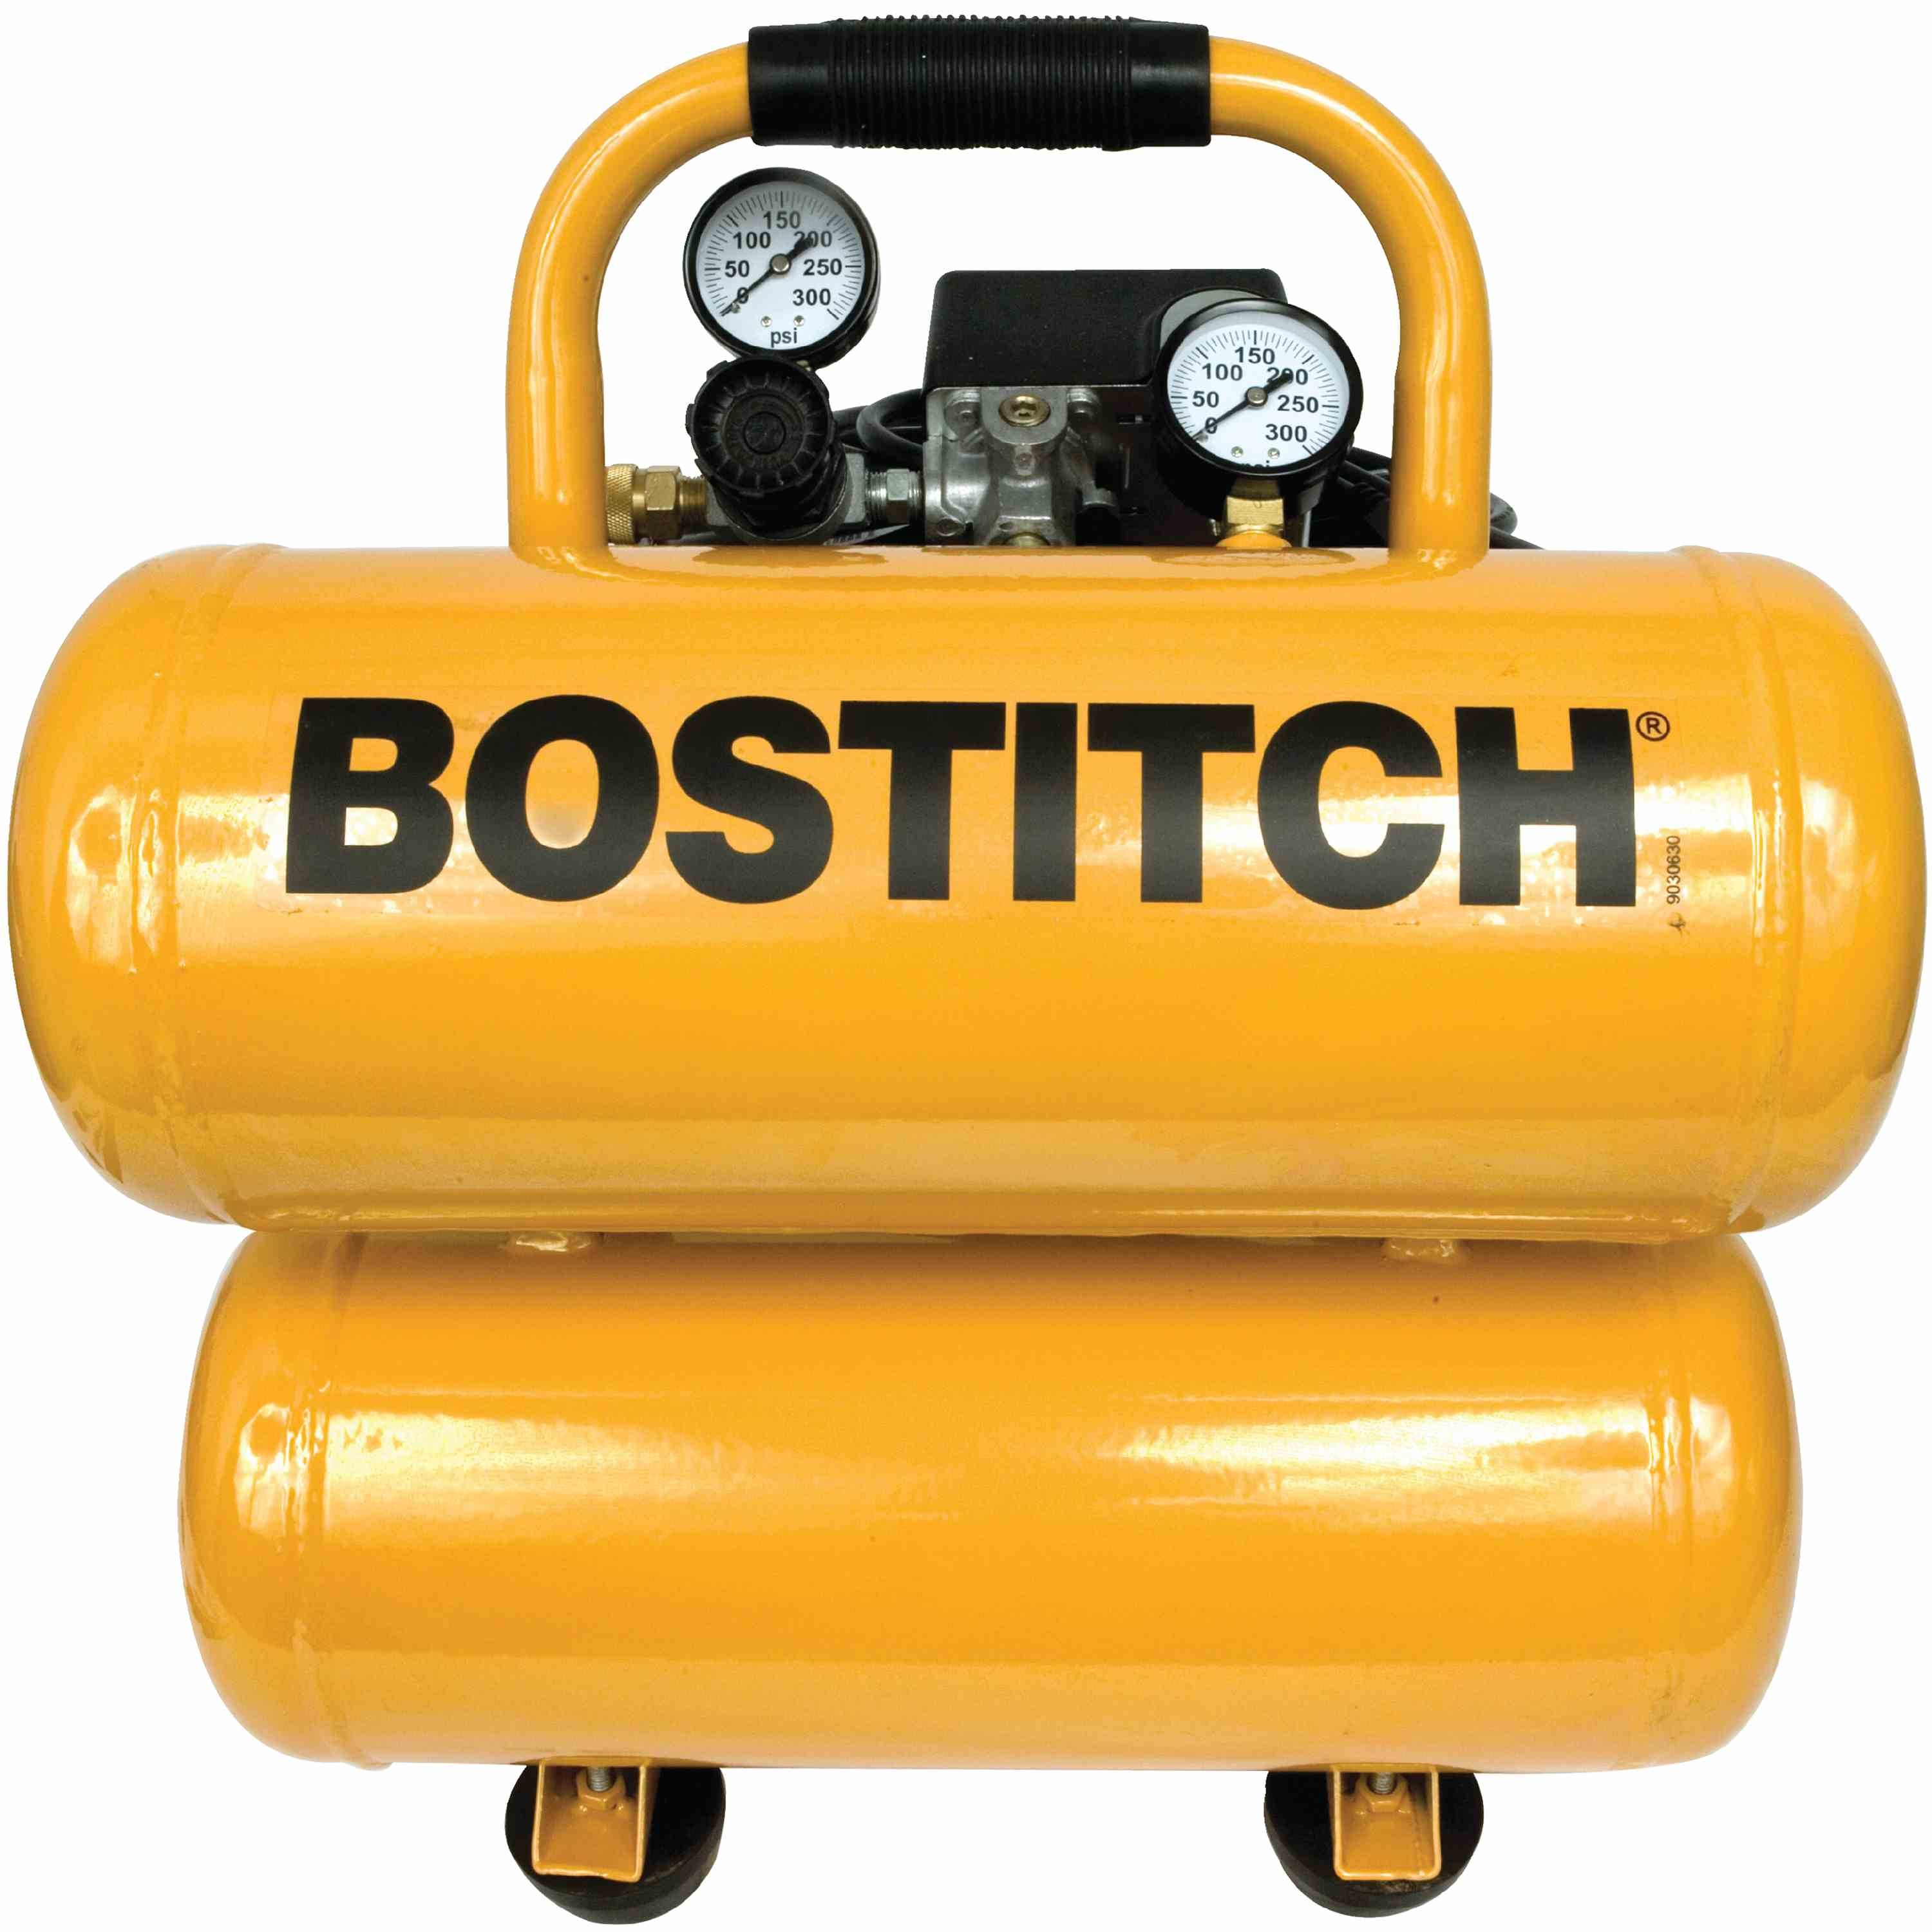 Bostitch - 4 Gallon OilLubricated Stack Tank Compressor - CAP2040ST-OL